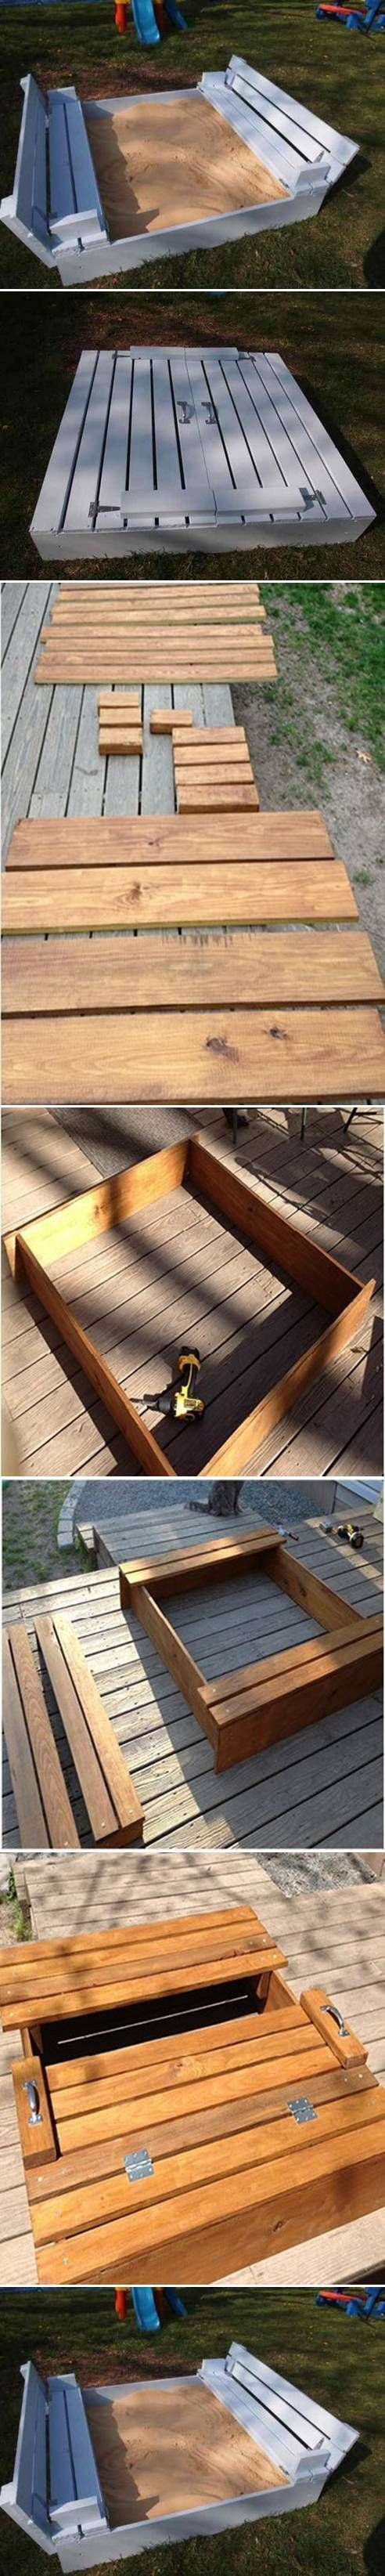 DIY Sandbox...I'm going to get my dad to build this for me!